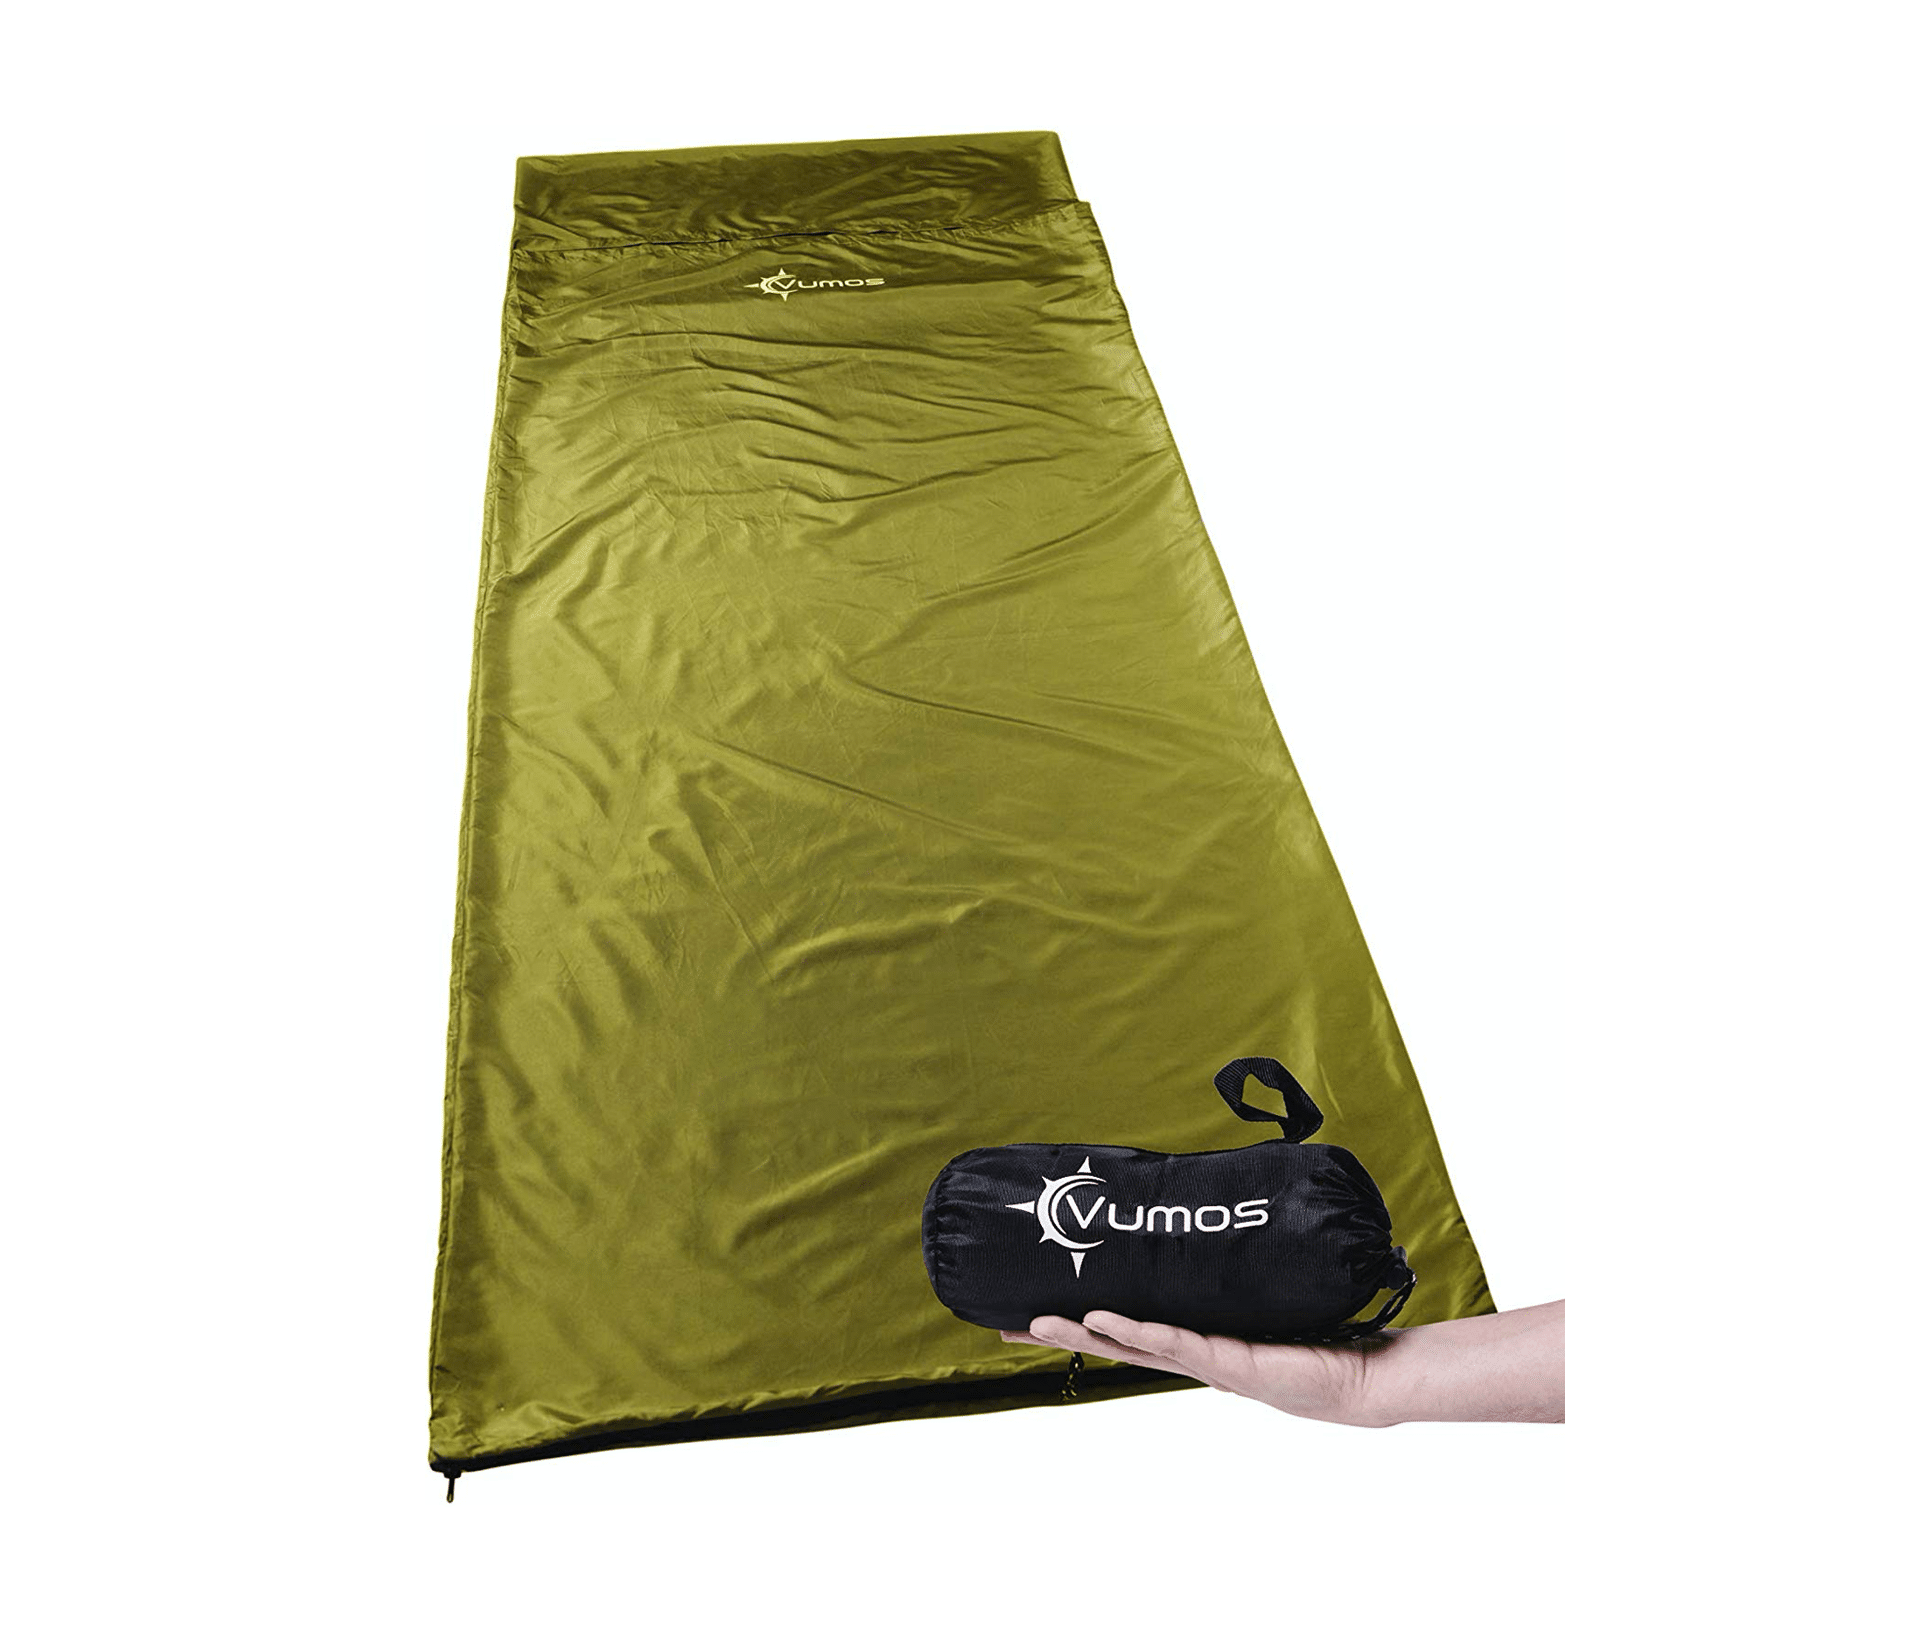 Vumos Sleeping Bag Liner